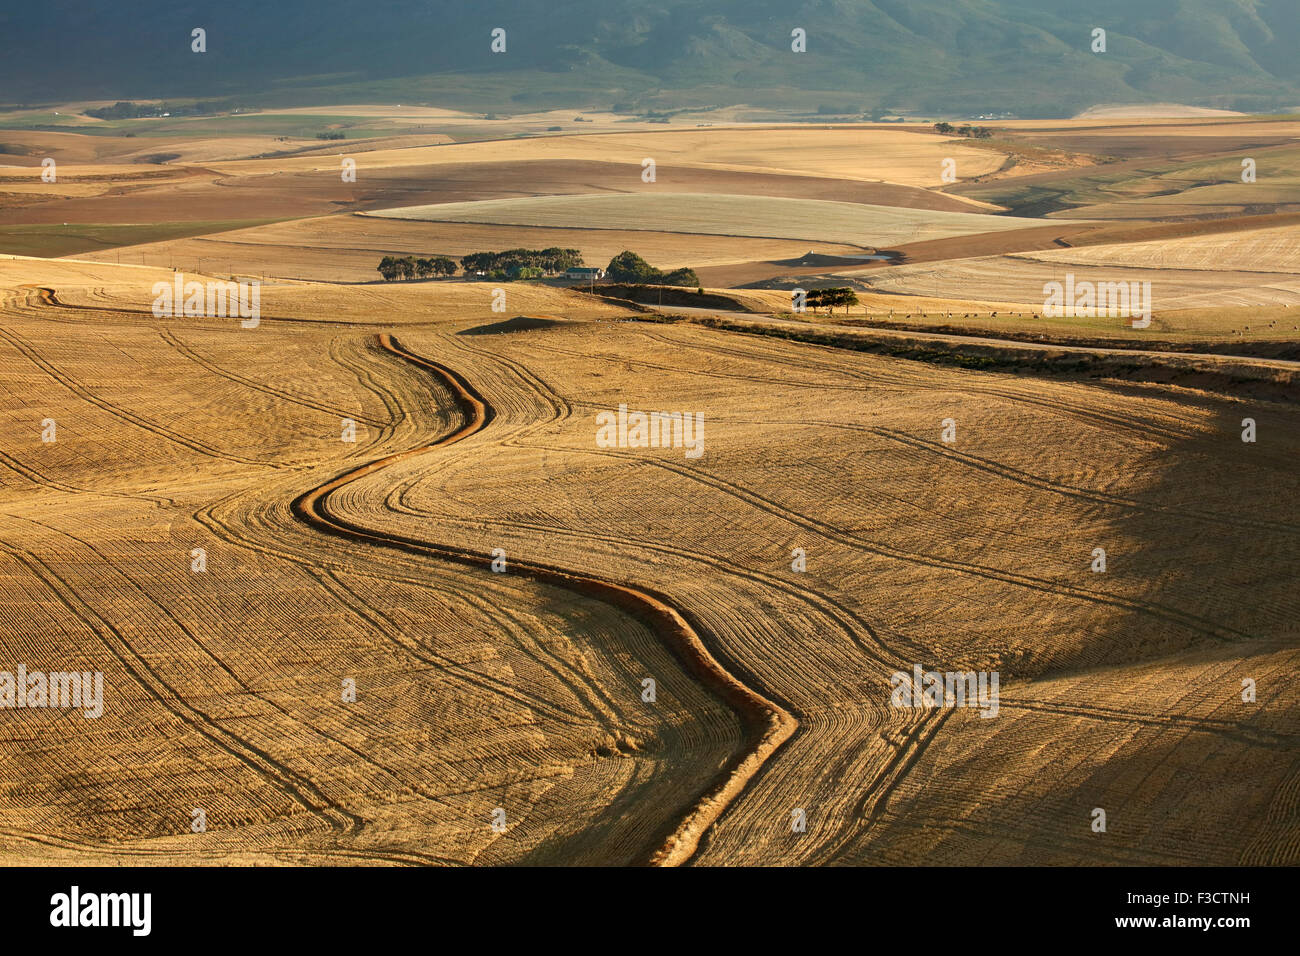 rolling farmland in the Overberg region near Villiersdorp, Western Cape, South Africa - Stock Image